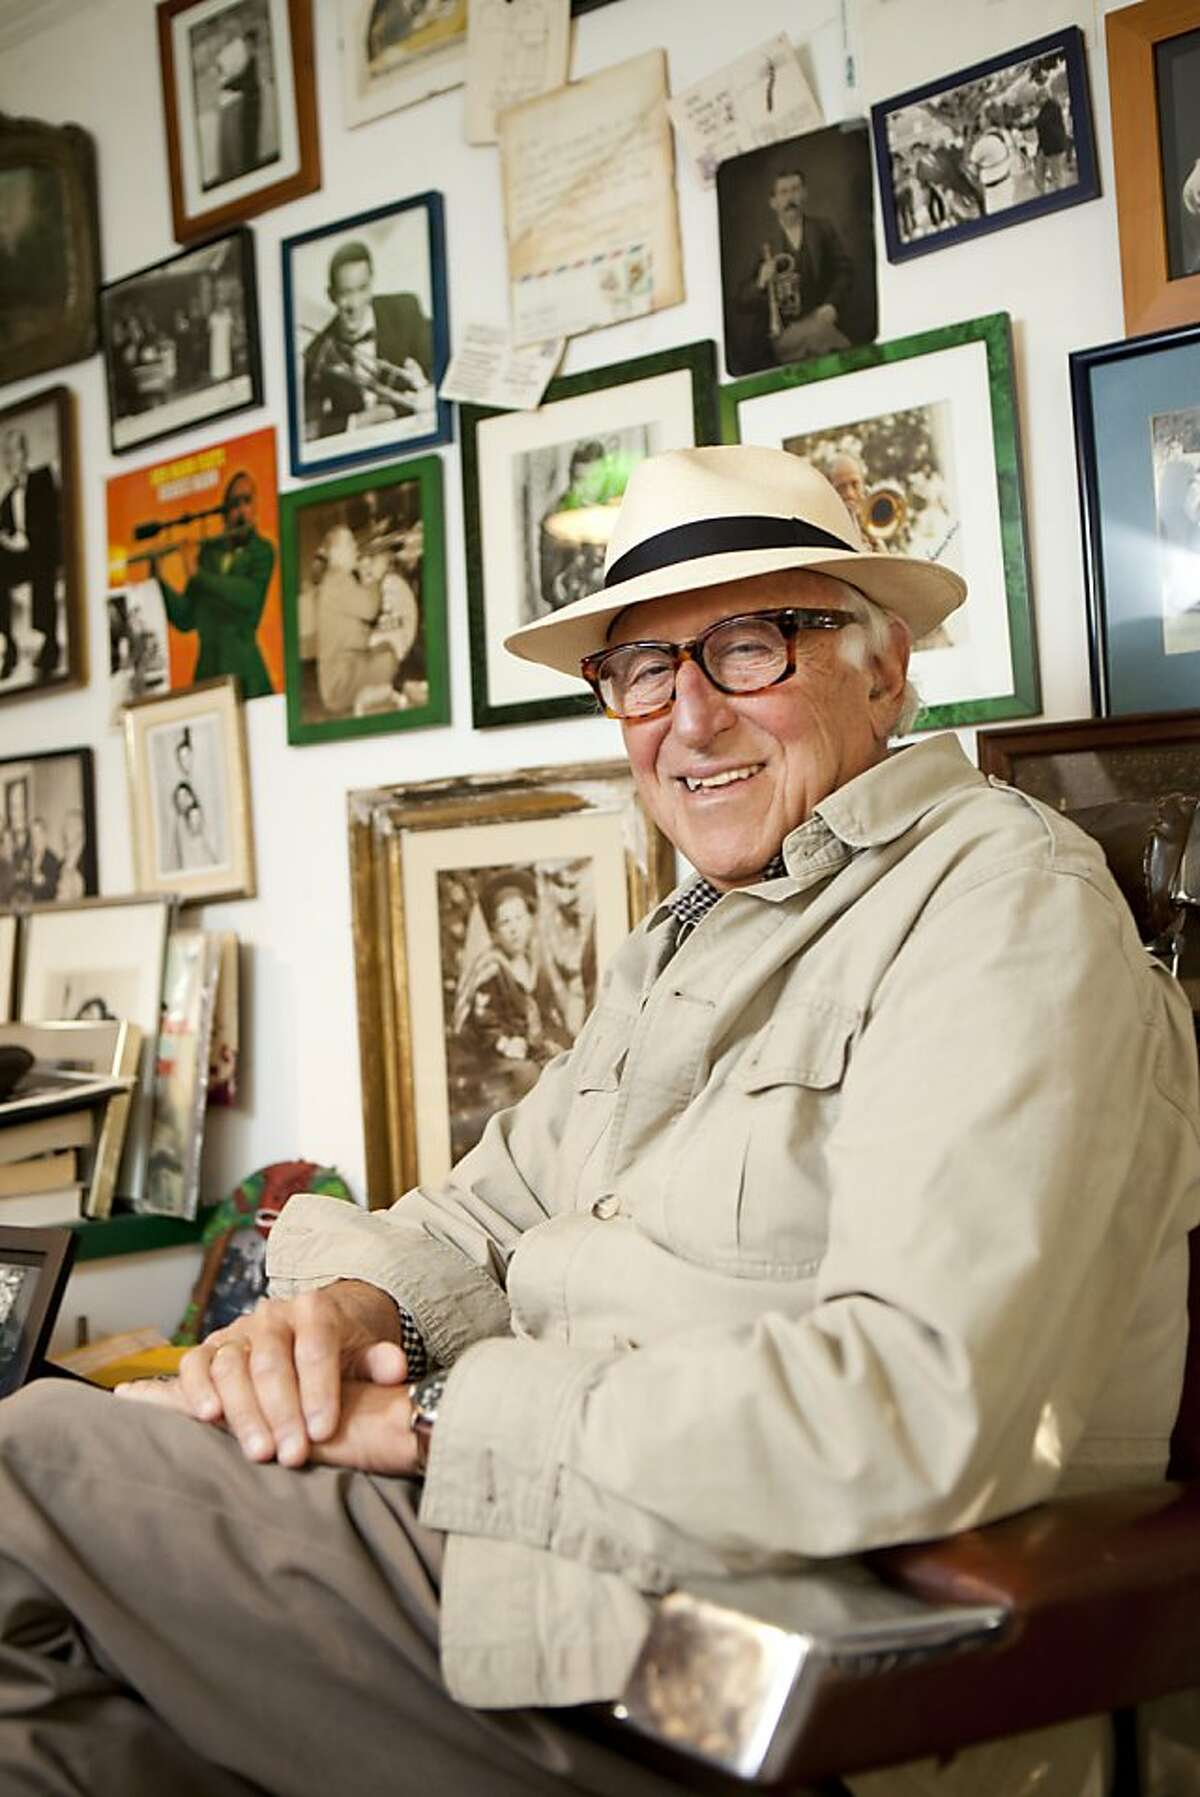 Radio humorist and jazz trombonist Mal Sharpe sits in his barber chair at his home against a collection of photographs of famous jazz trombonists in Berkeley, Calif. on Saturday Nov. 12, 2011.